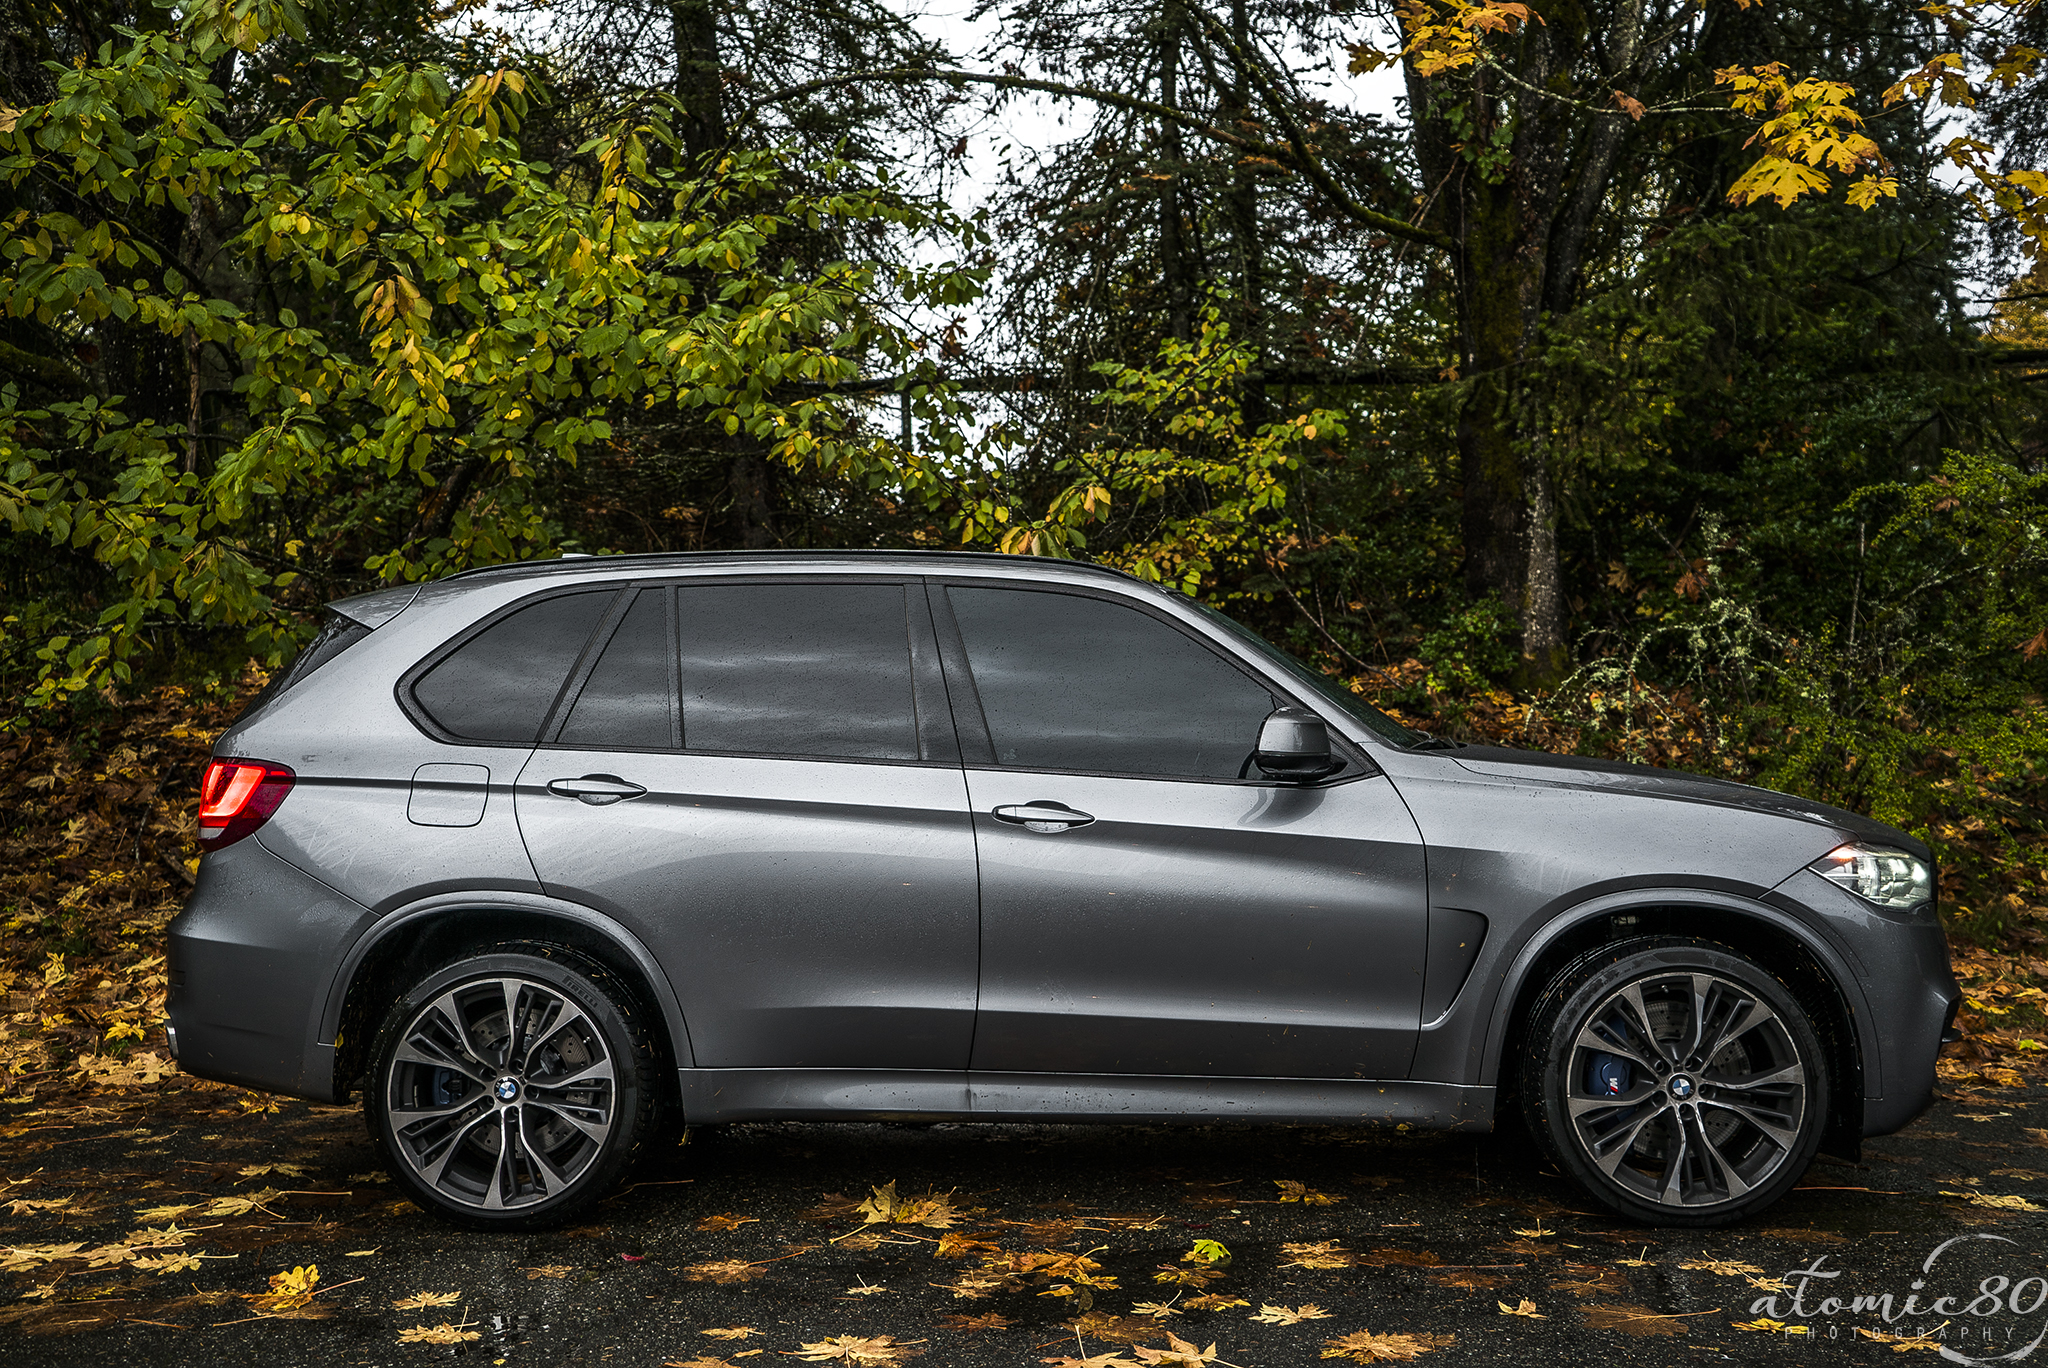 bmw x5 and x6 forum f15 f16 view single post random x5 shot of the day add yours let. Black Bedroom Furniture Sets. Home Design Ideas